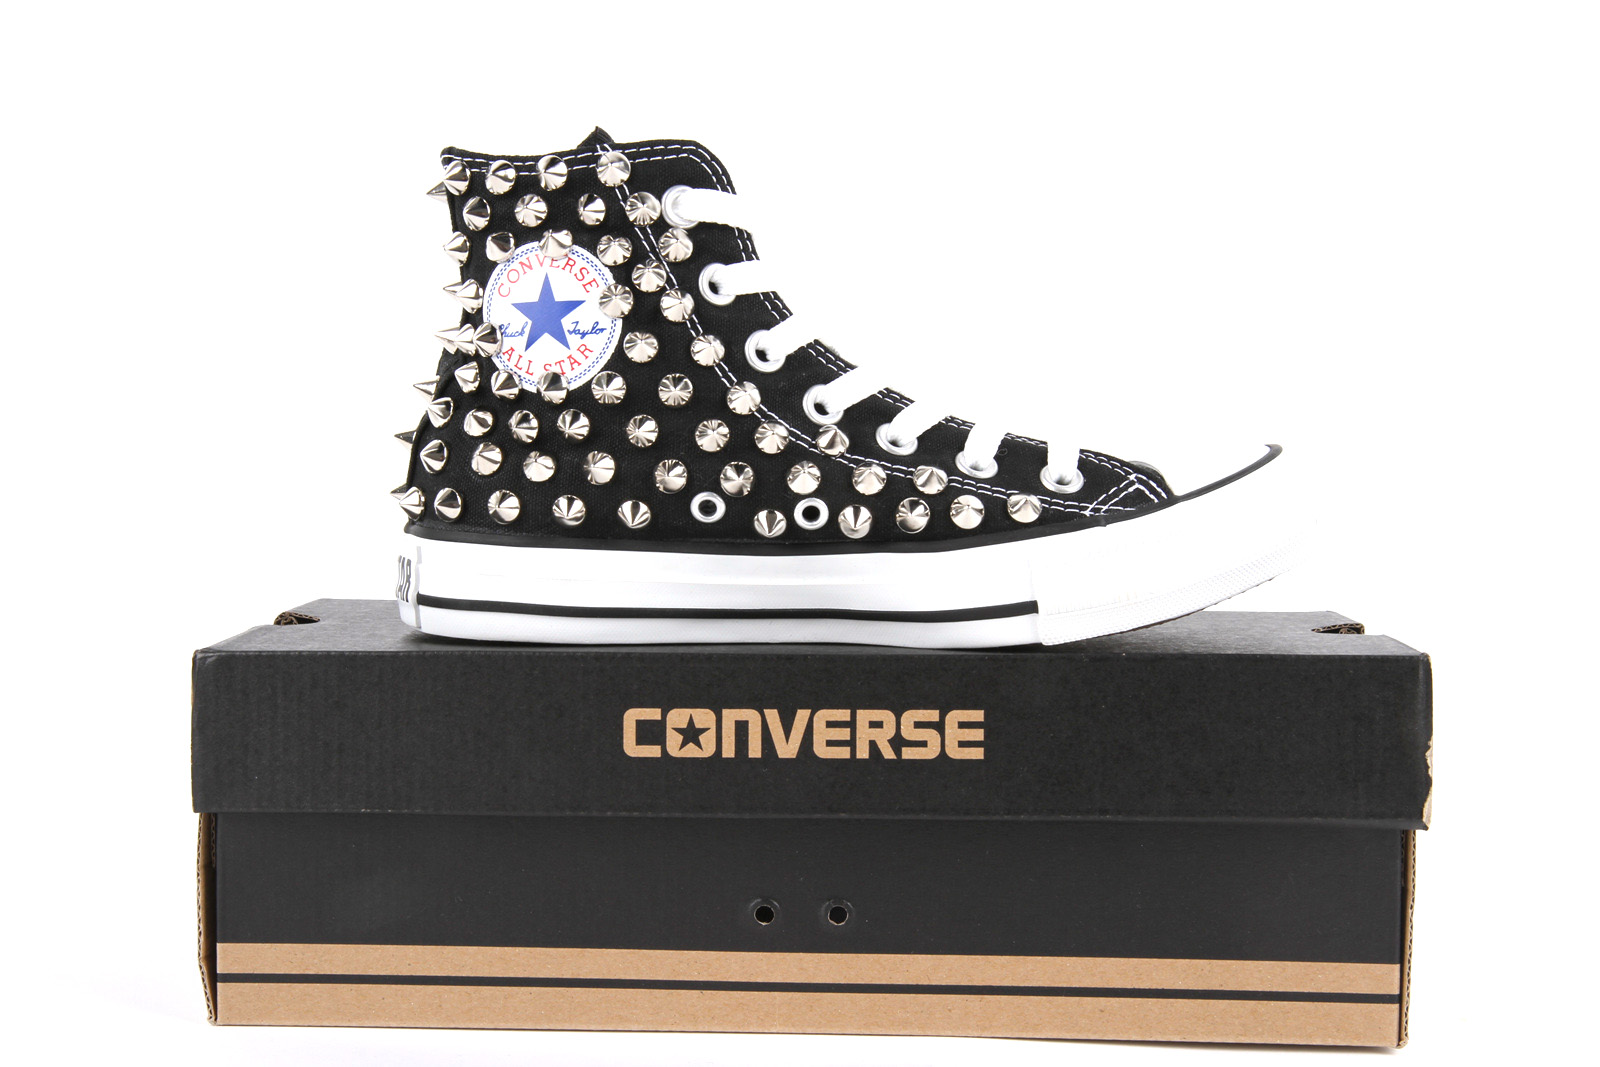 Studded Converse All Star Chuck Taylor High Top Black - Fashion Sneakers | RebelsMarket